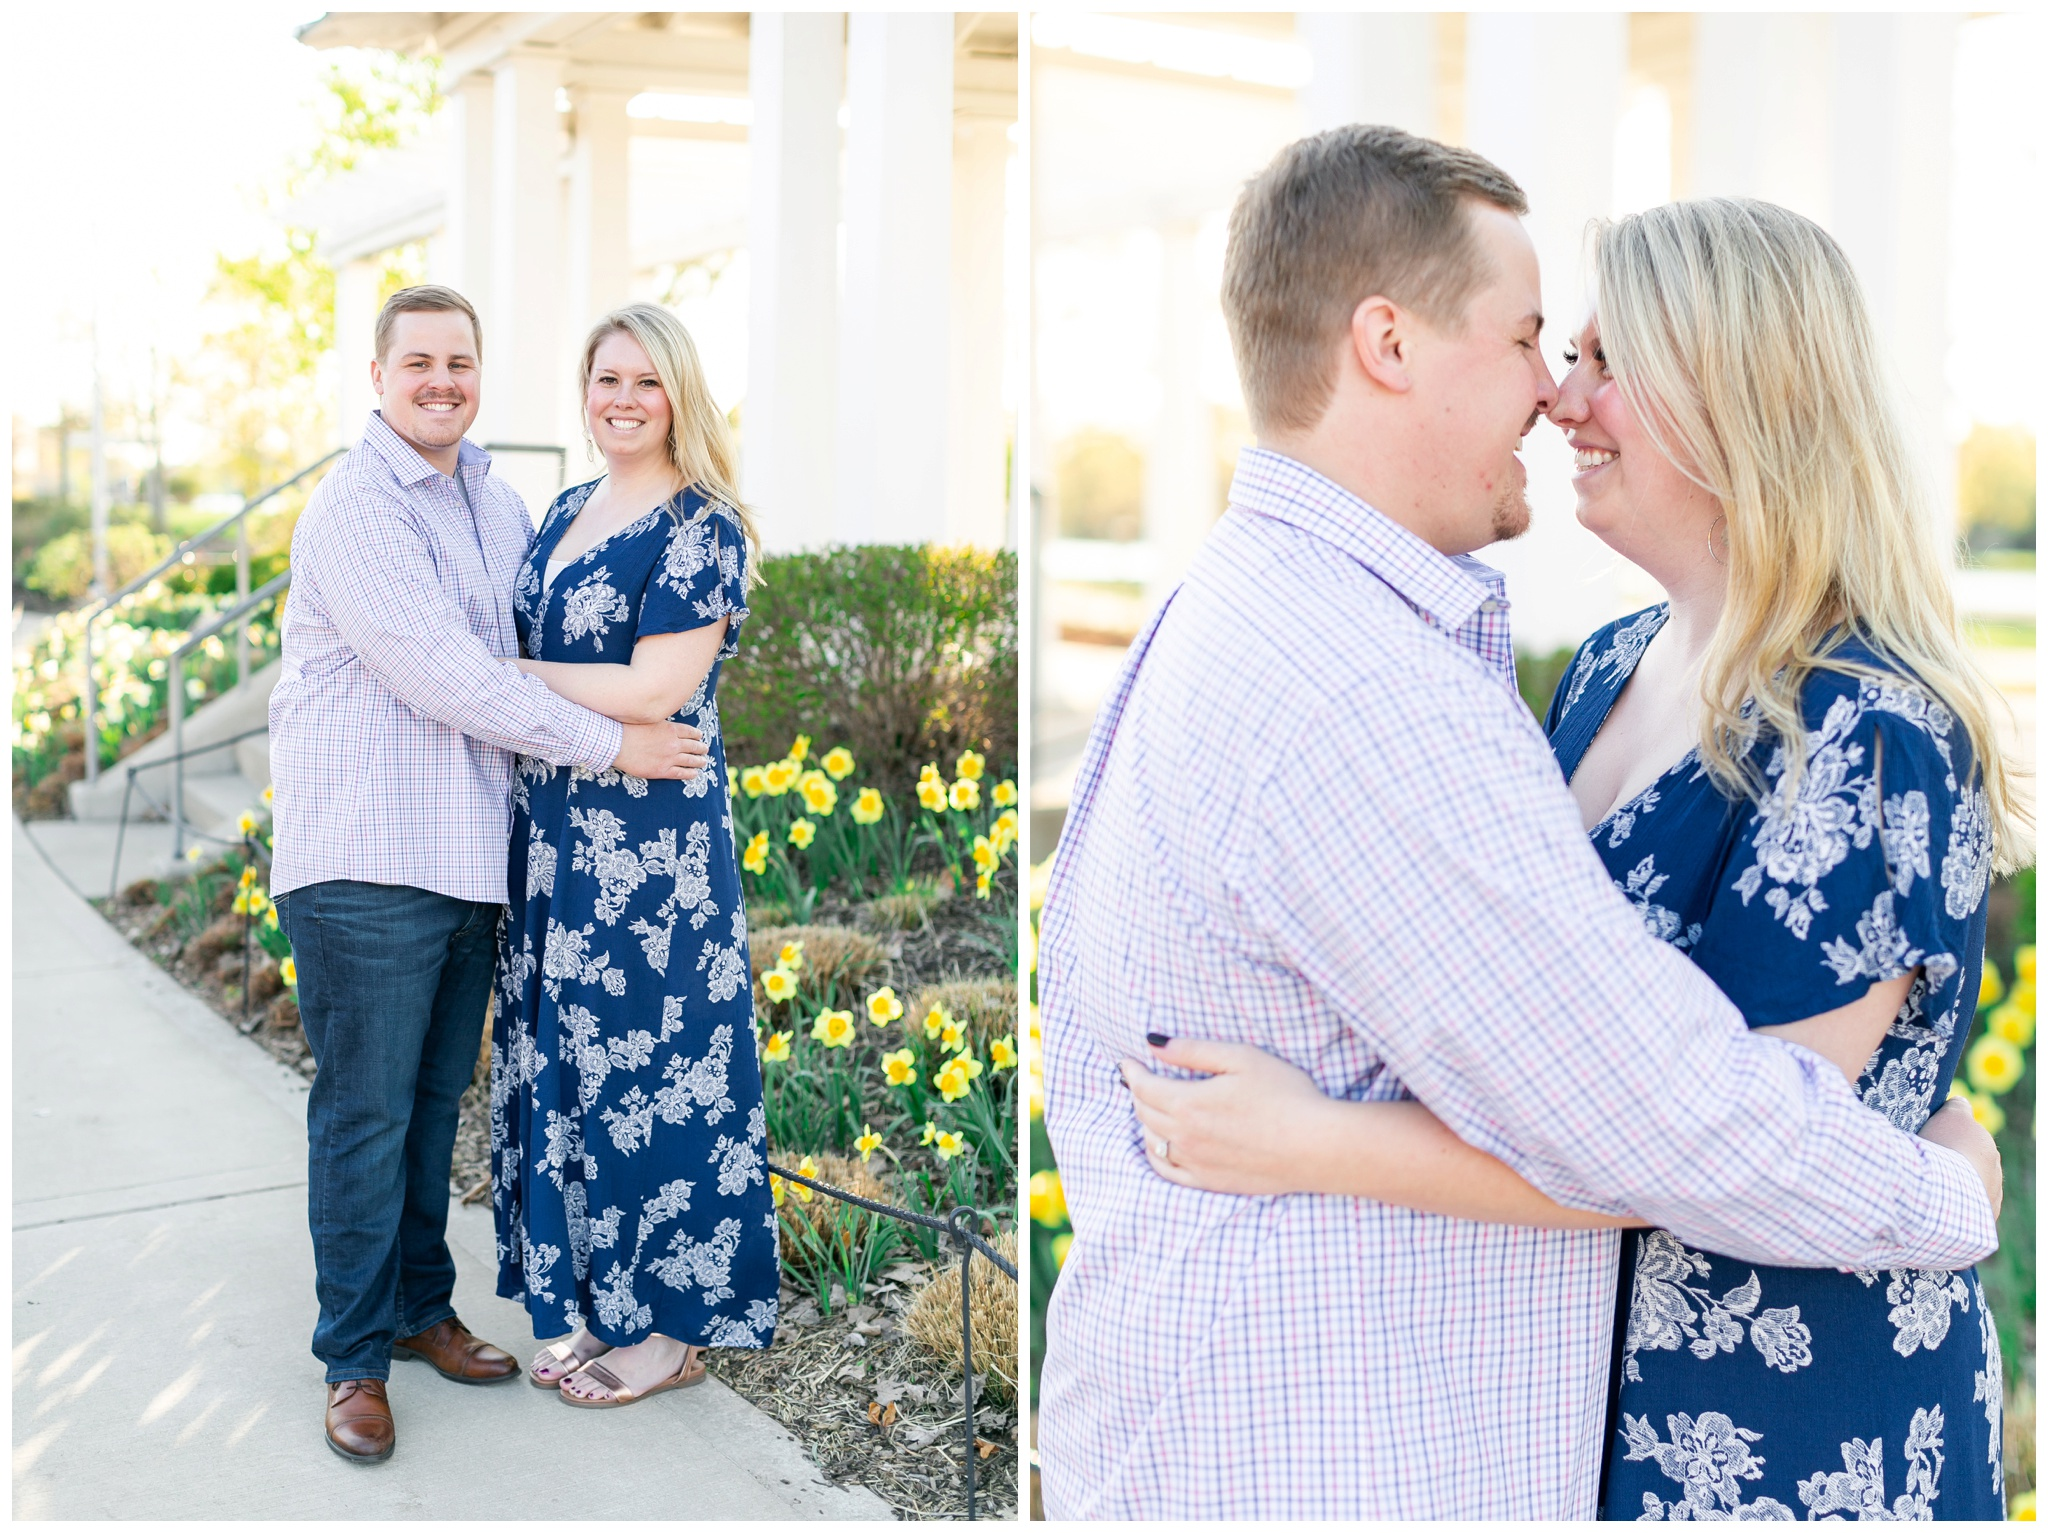 nicholas_conservatory_engagement_session_rockford_illinois_caynay_photo_2978.jpg